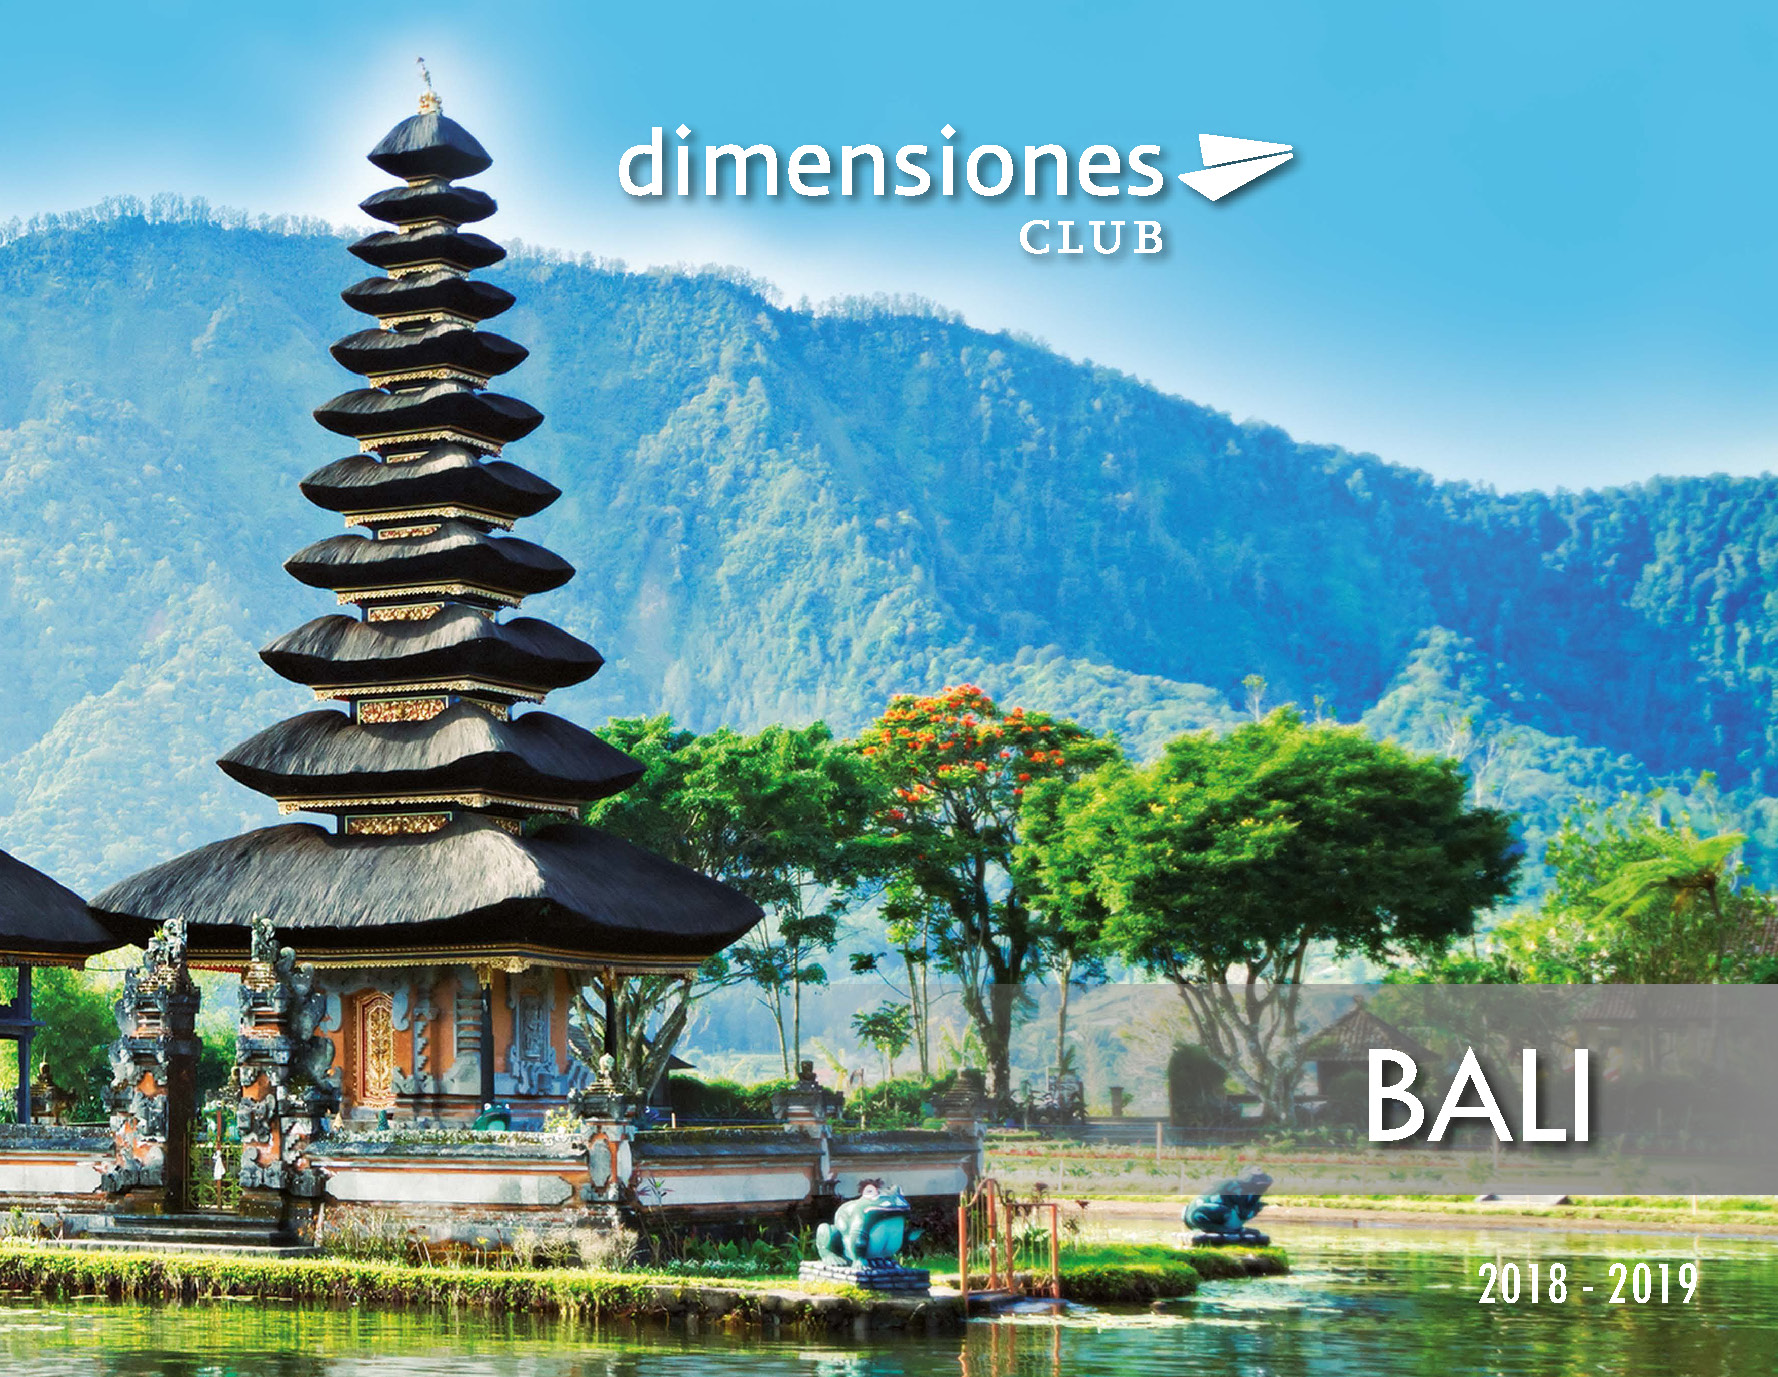 Catalogo Dimensiones Club Bali 2018-2019